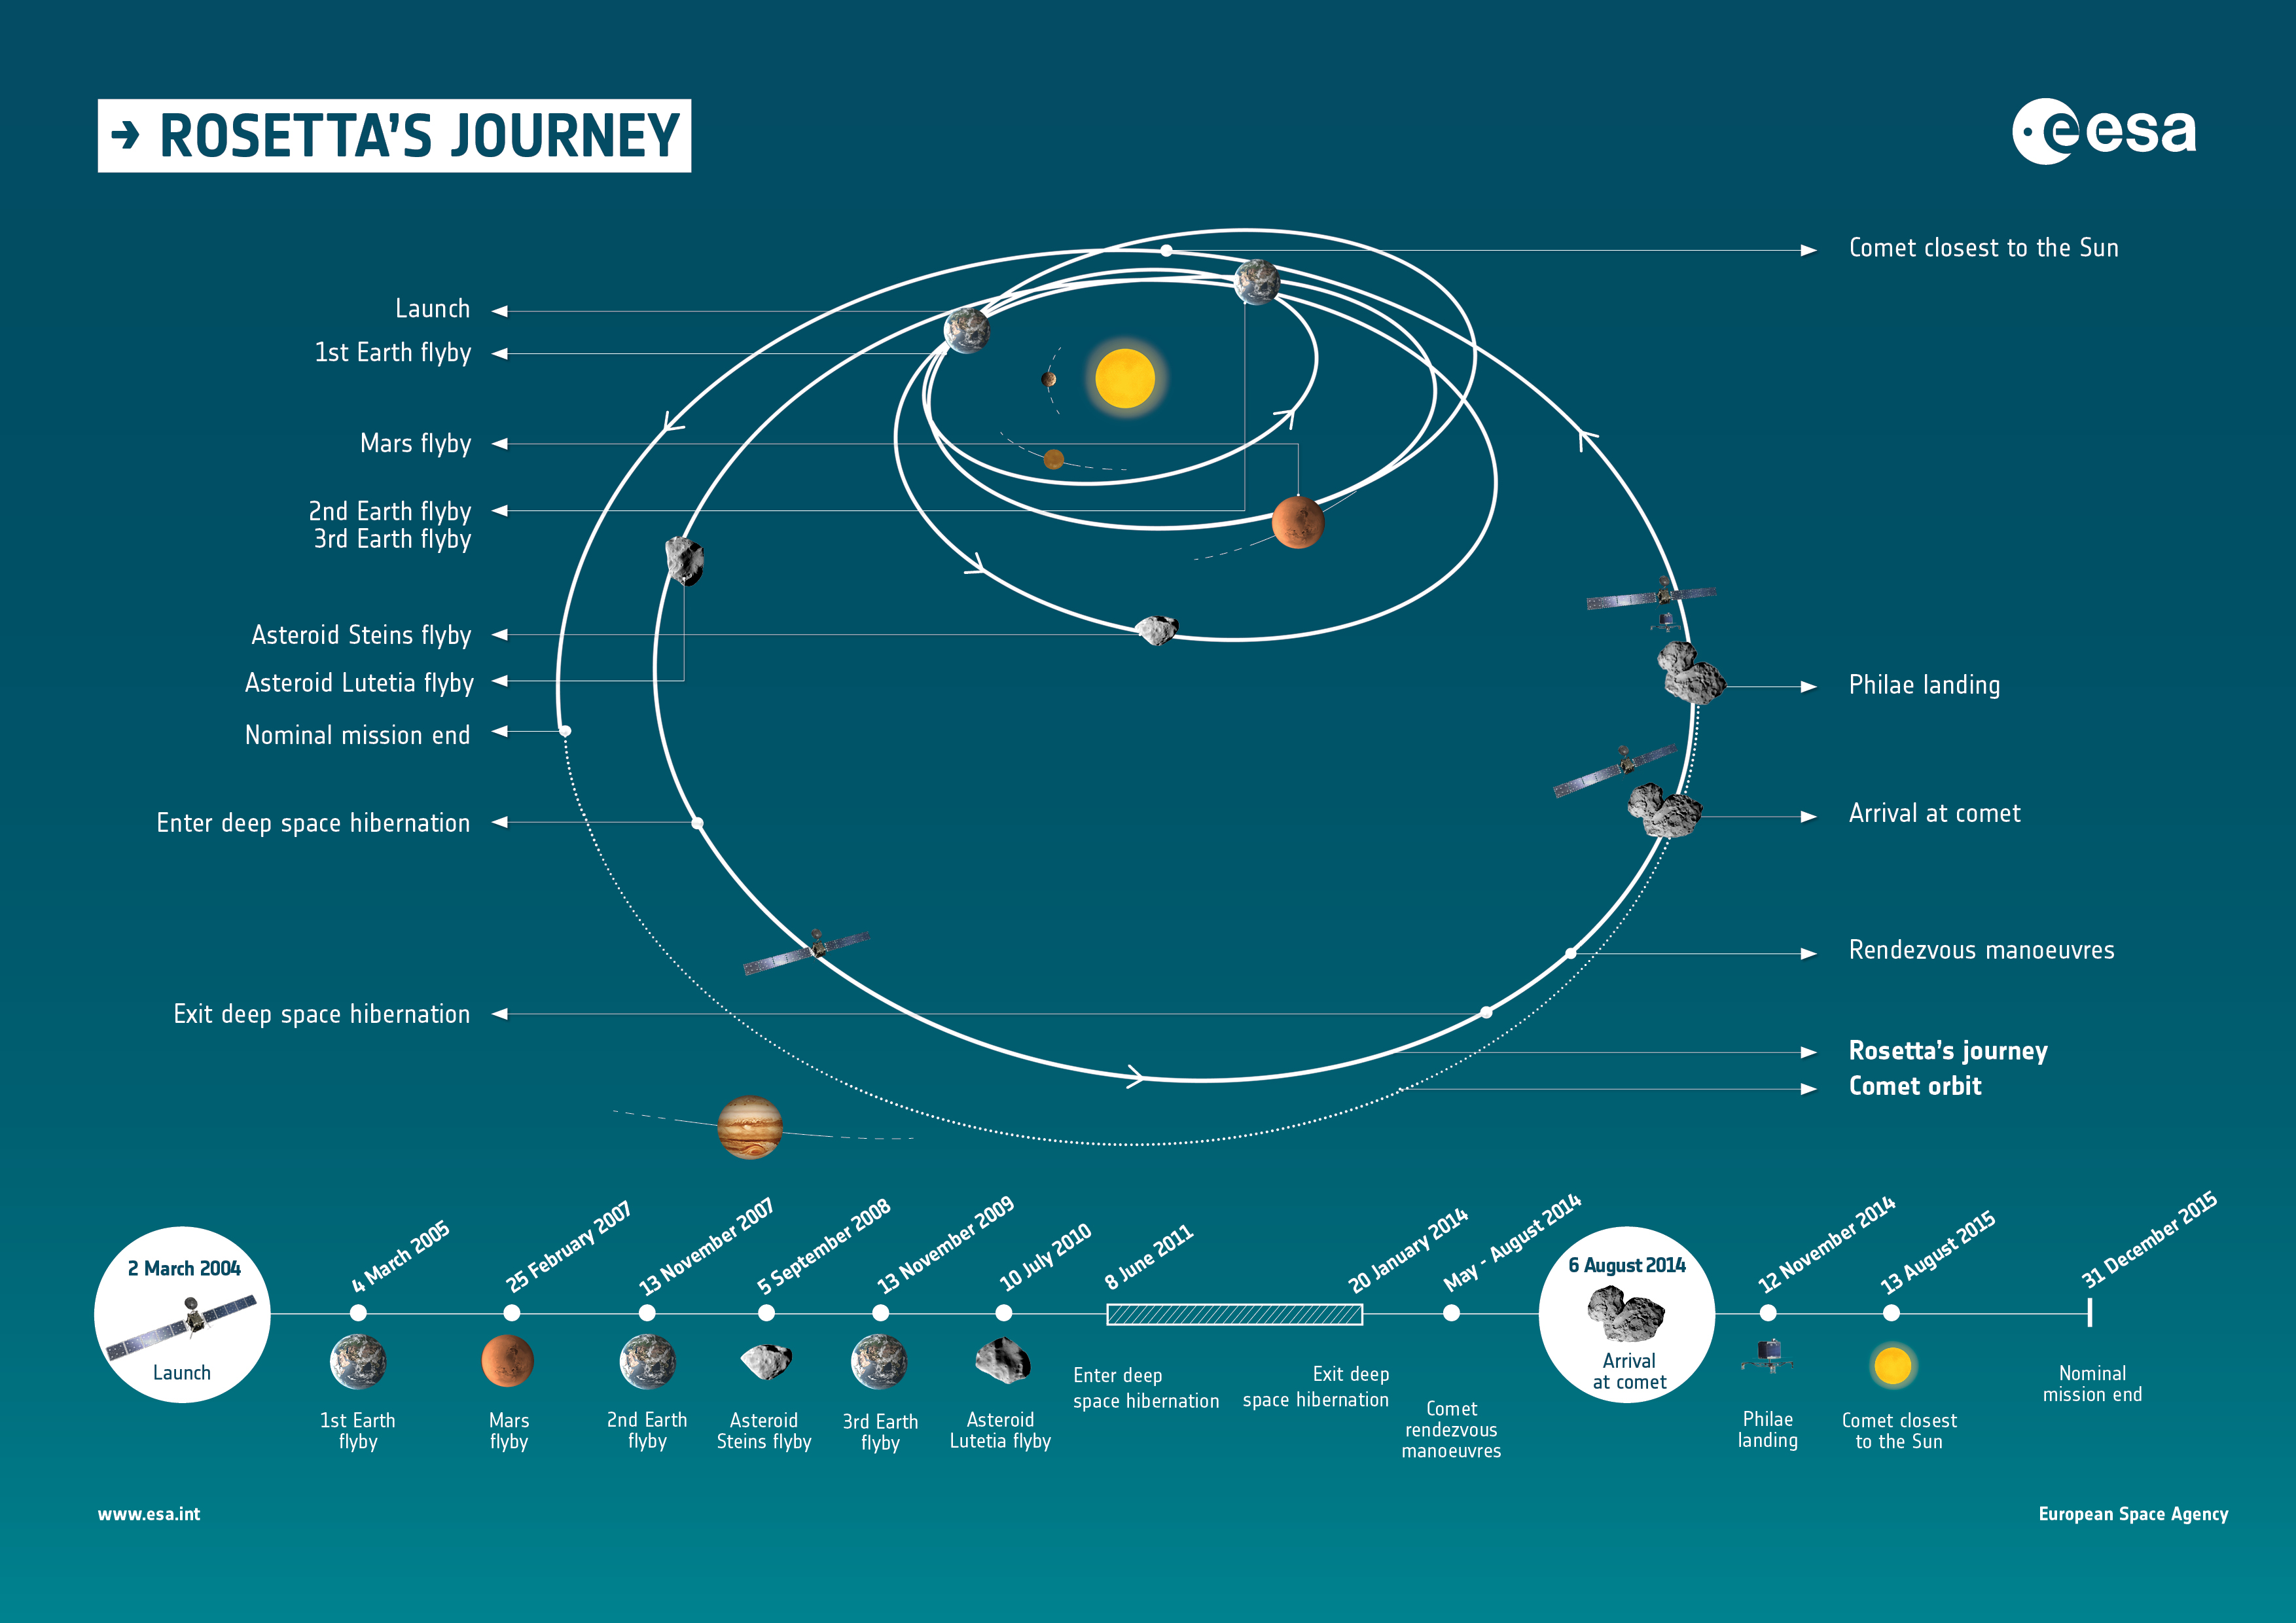 Infographic and timeline summarising the milestones of Rosetta's journey through the Solar System. Credit: ESA